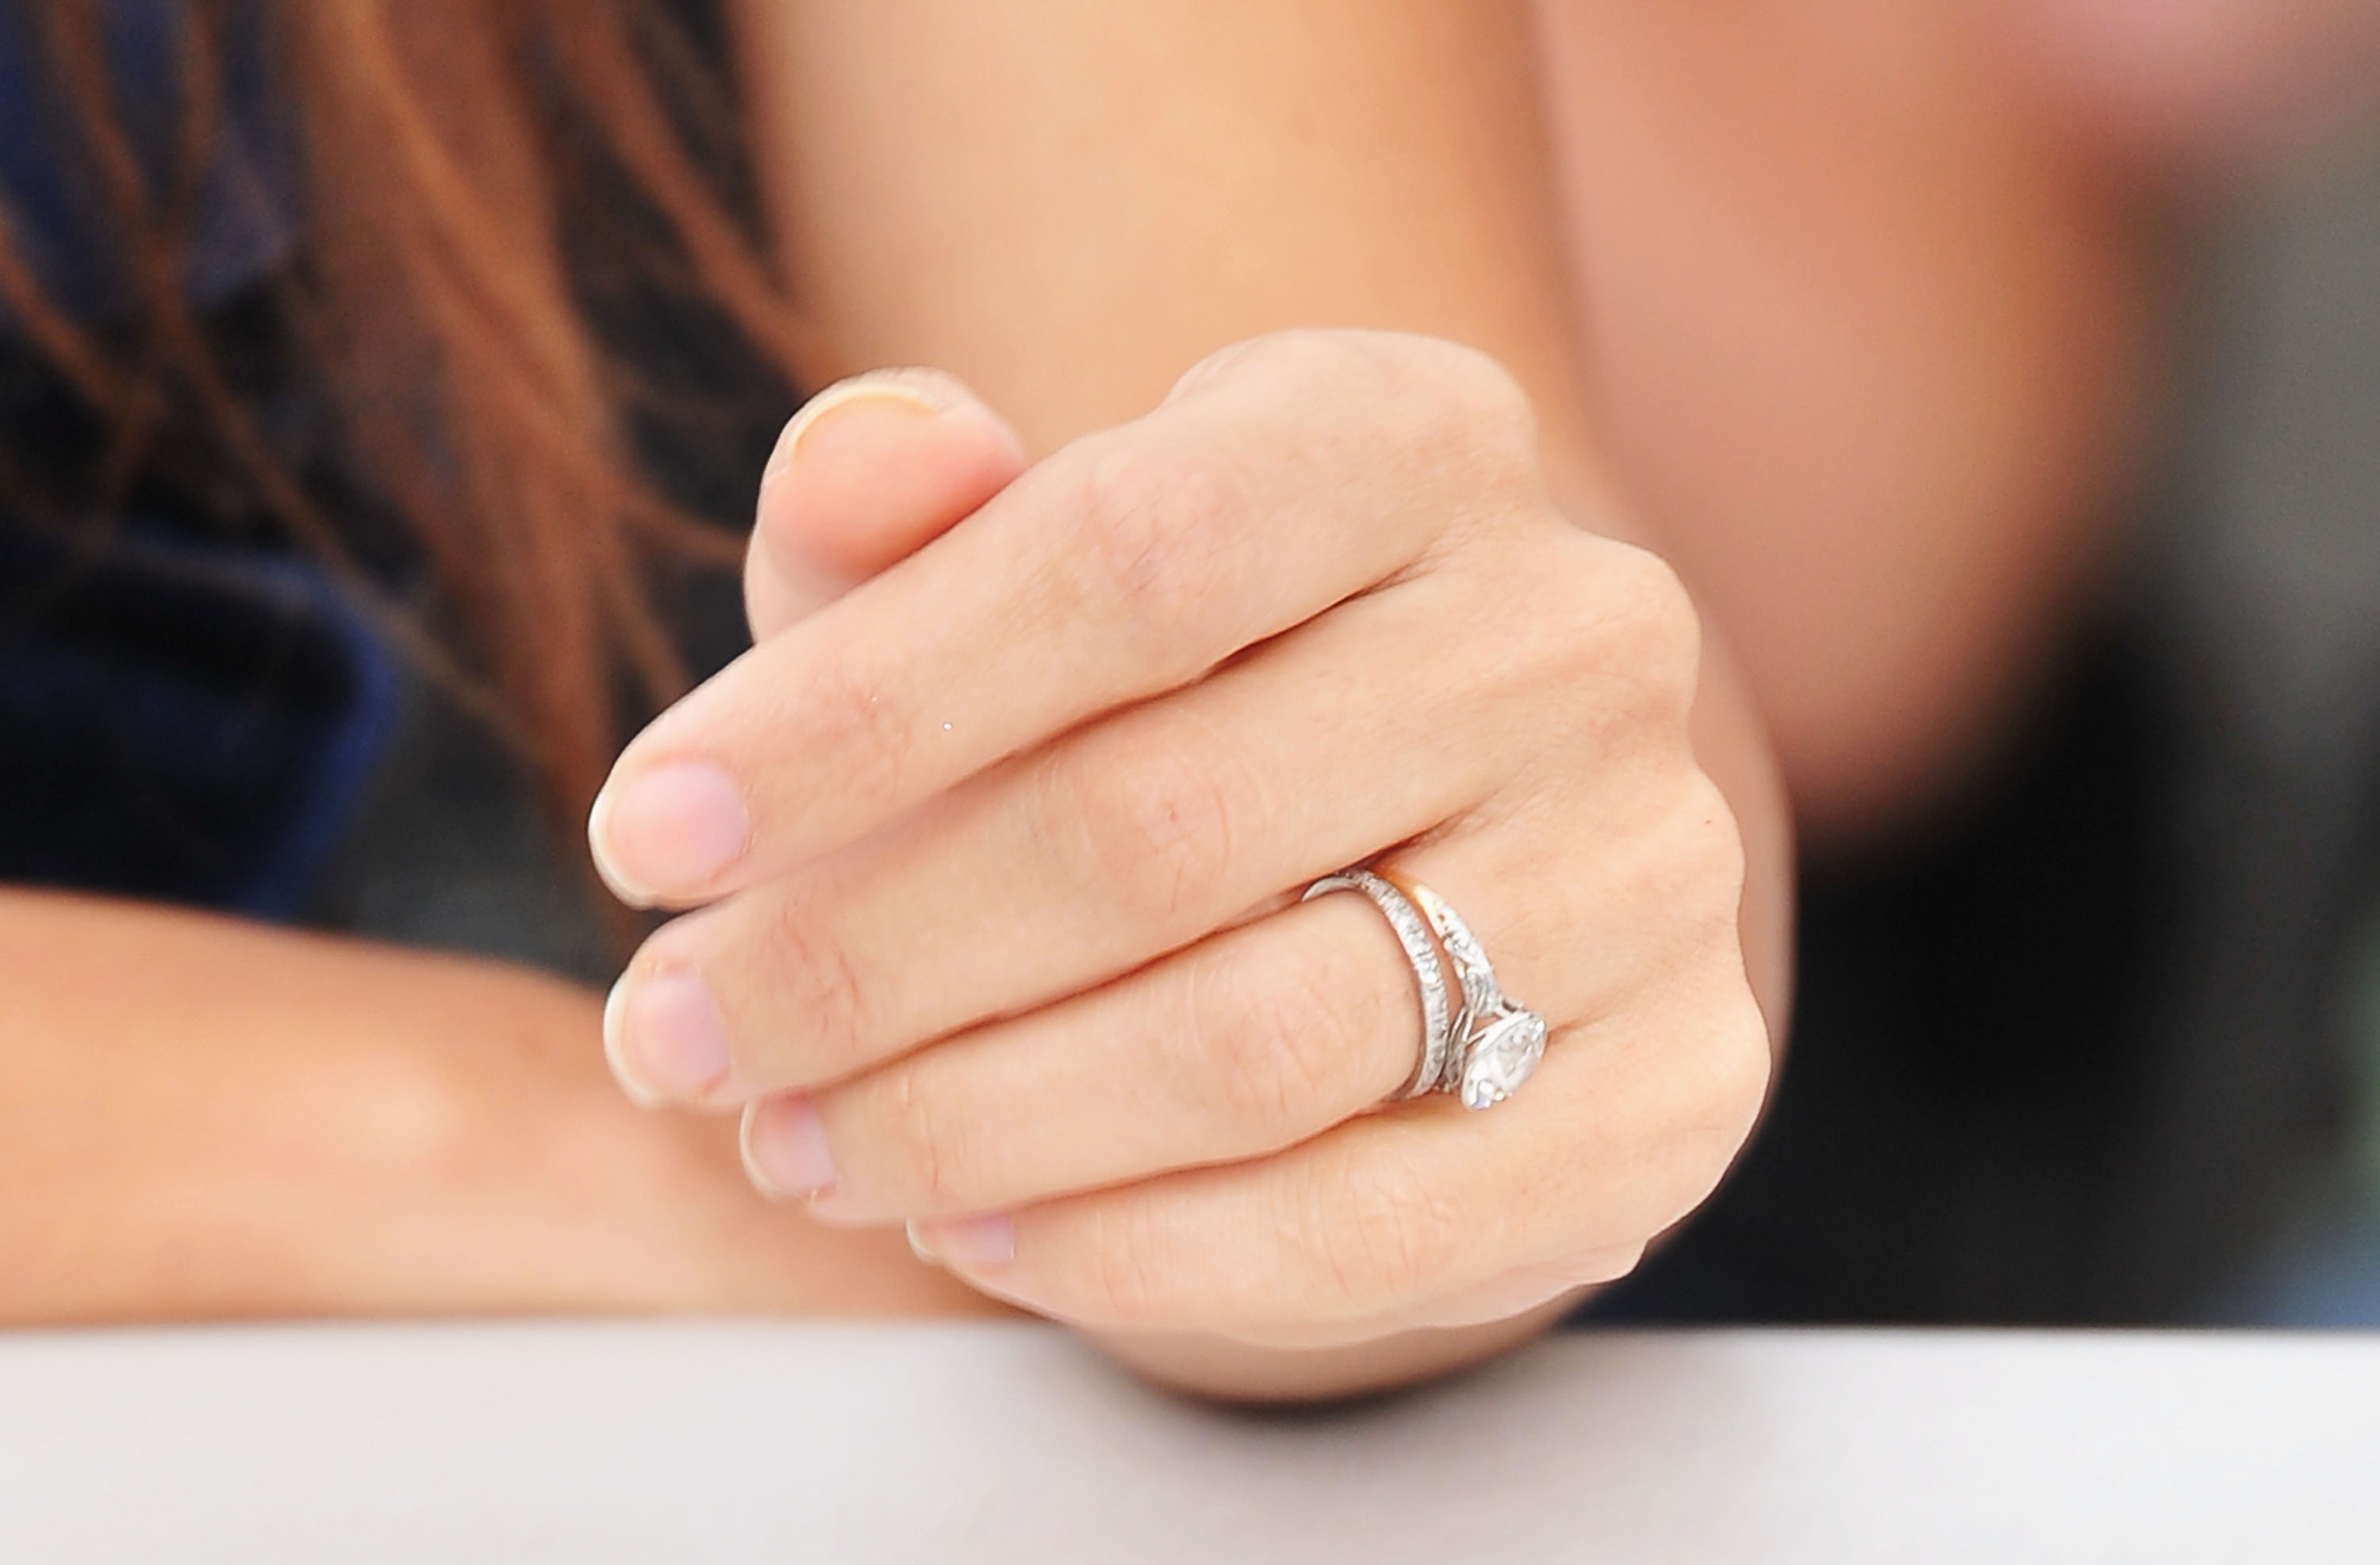 Why Politicians Only Care About Your Wedding Ring